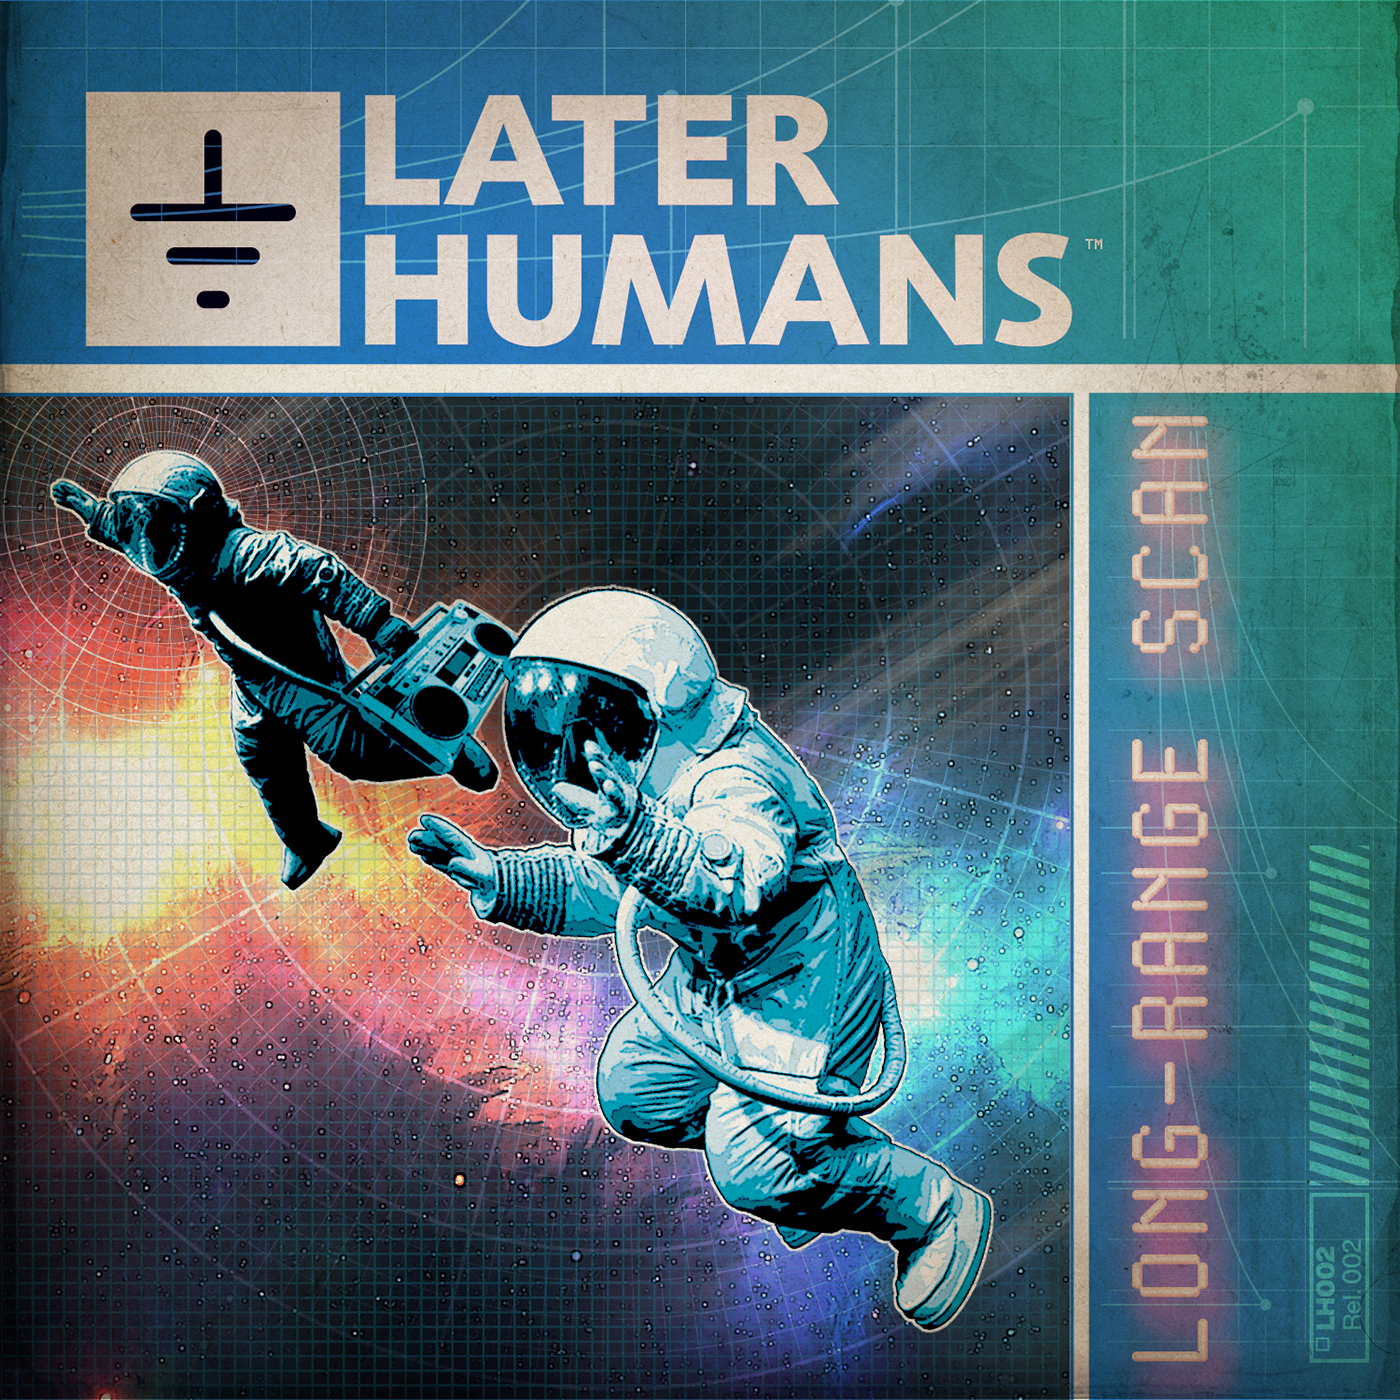 """Later Humans' """"Long-Range Scan"""" Single Cover"""